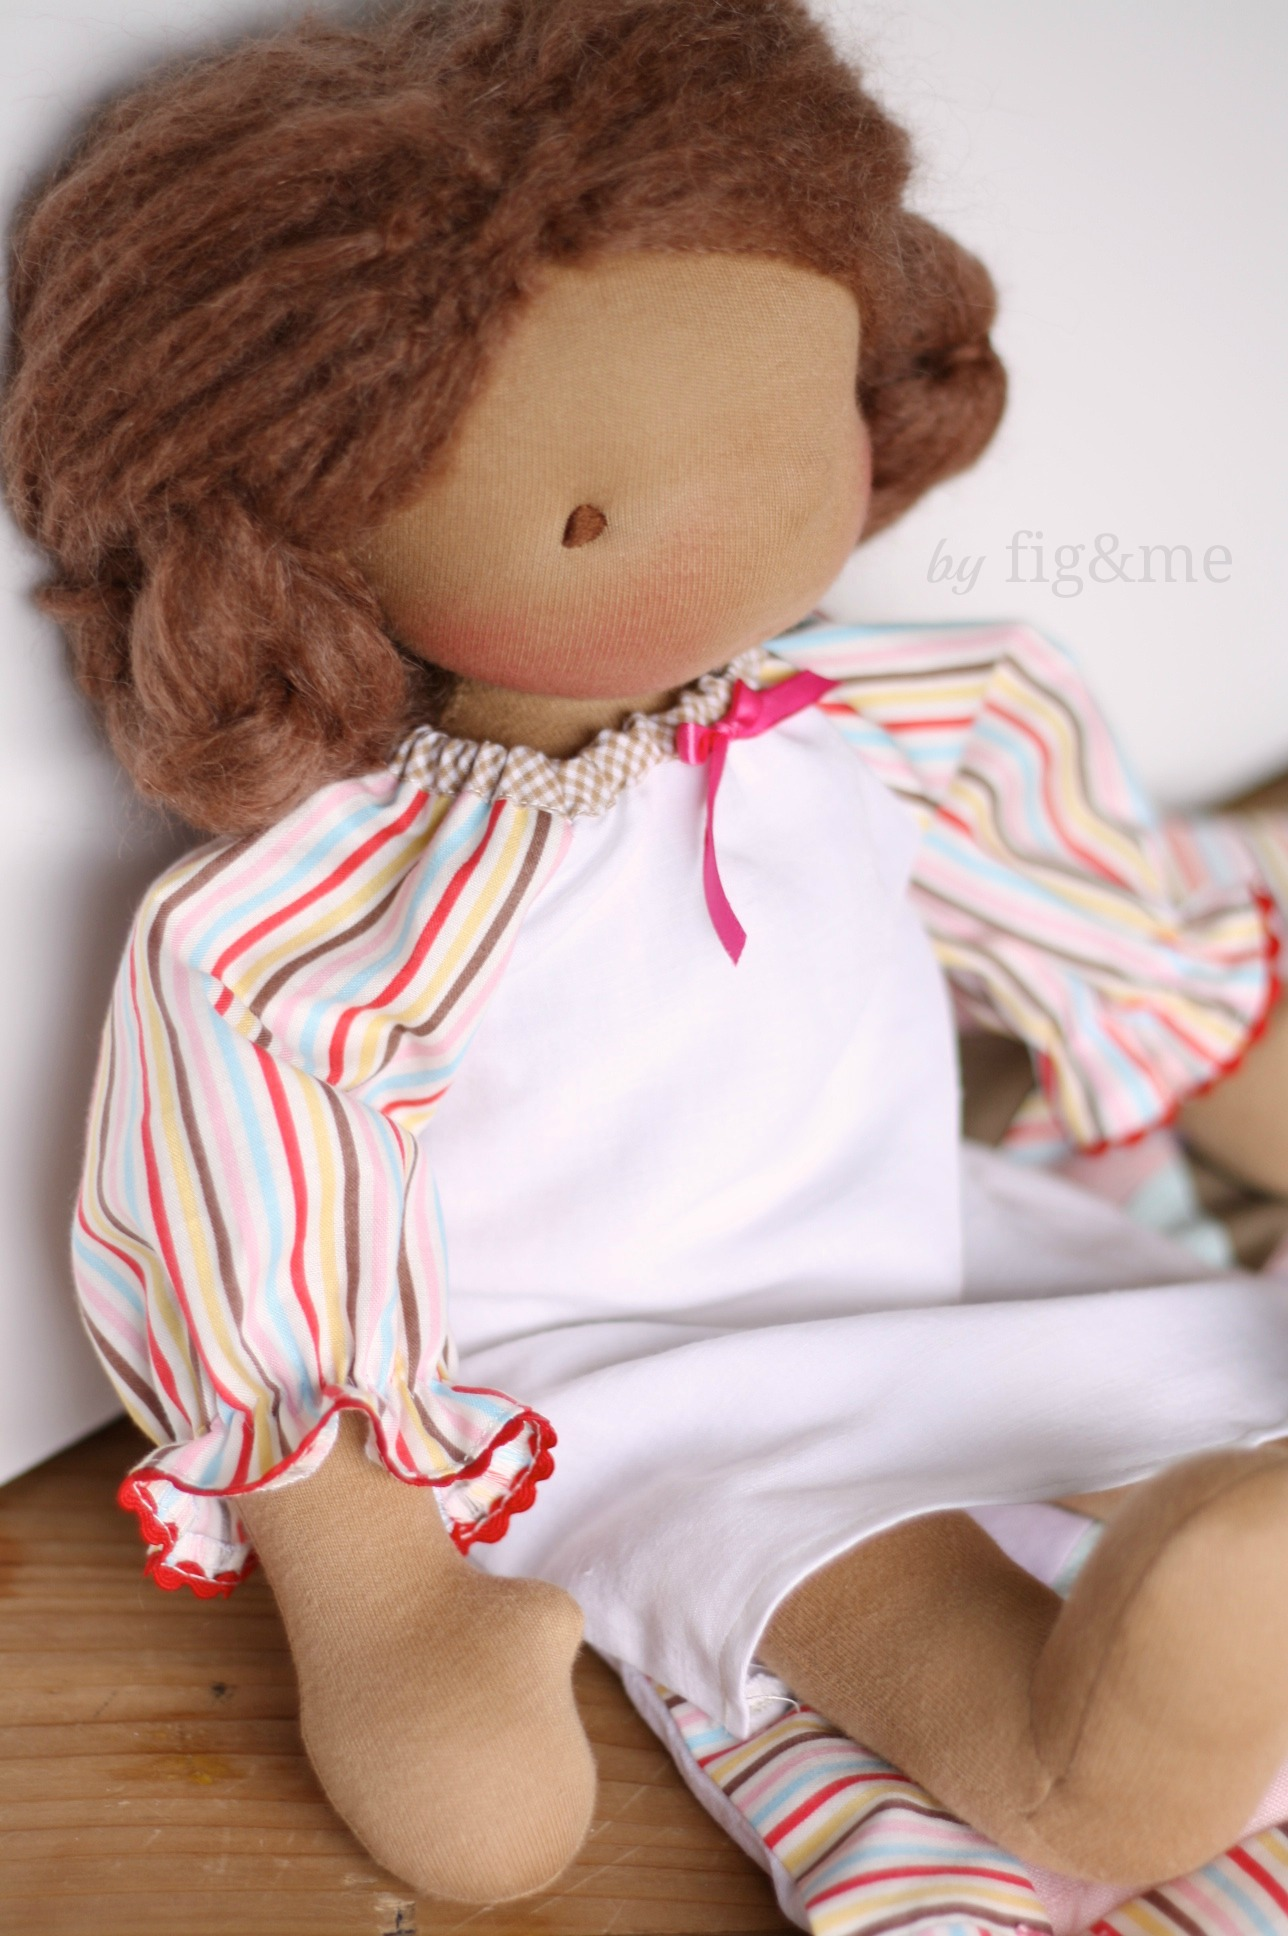 Doll nightgown, by fig and me